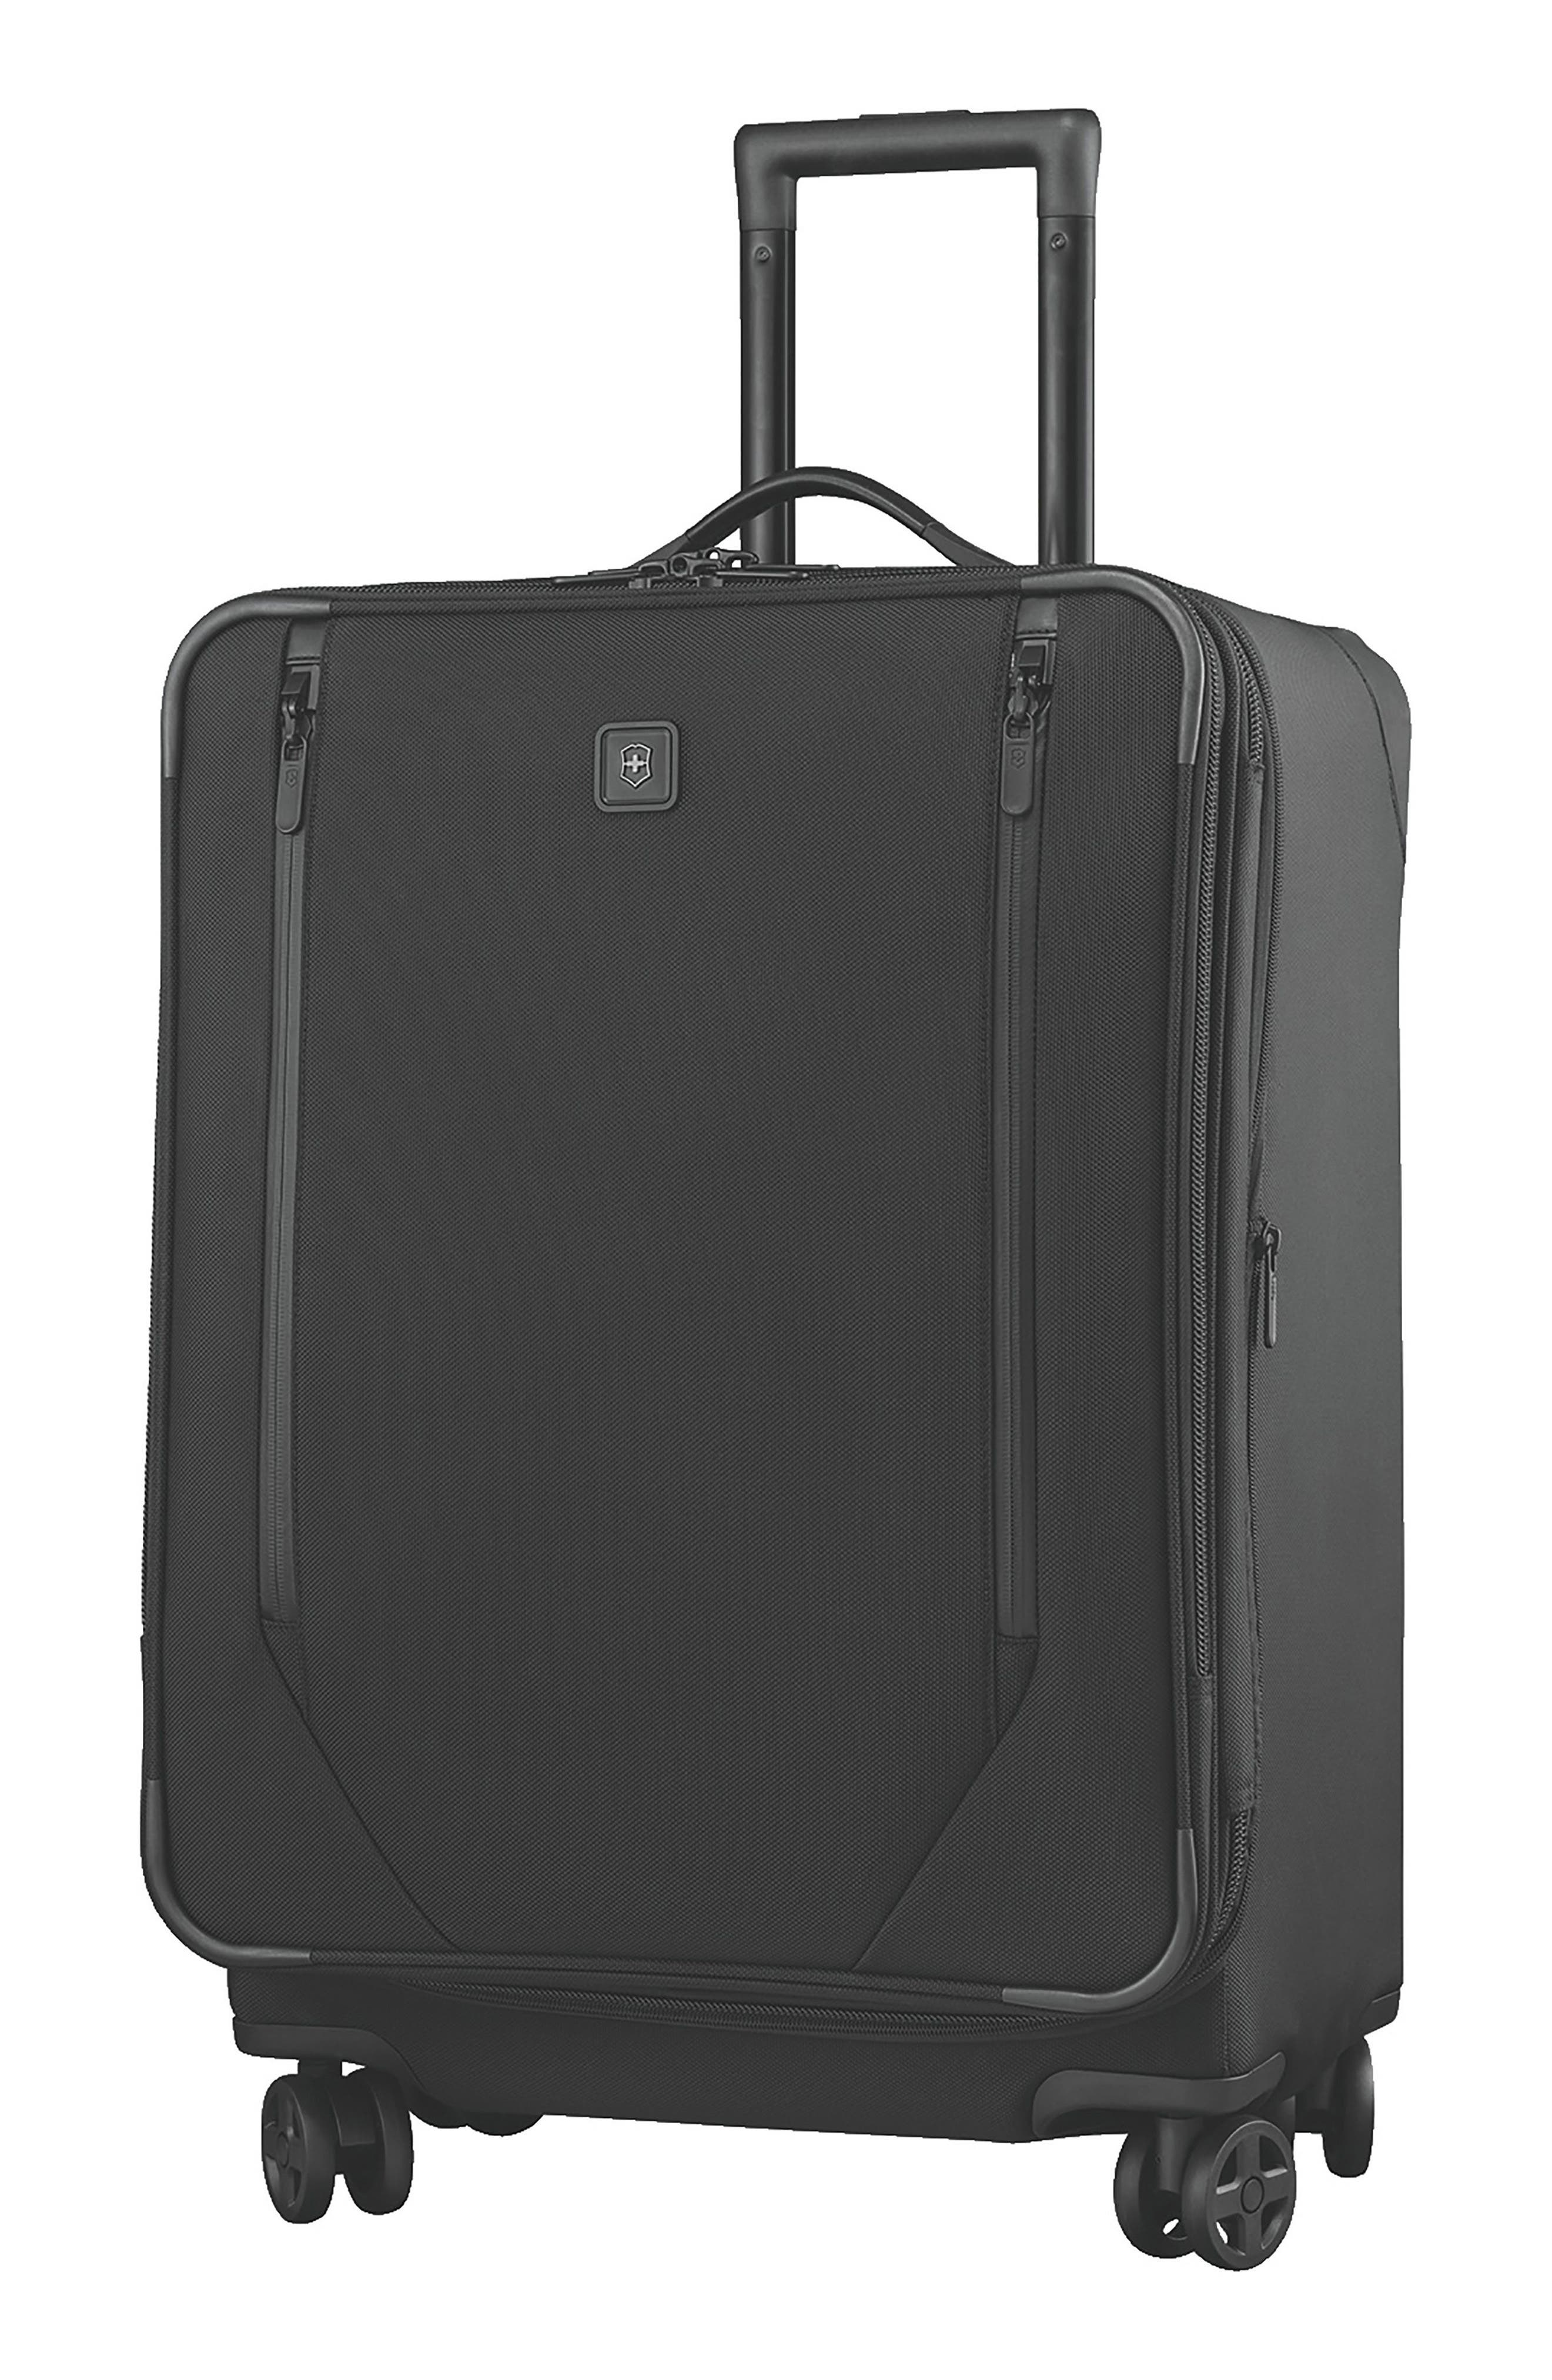 Lexicon 2.0 26-Inch Wheeled Suitcase,                             Main thumbnail 1, color,                             BLACK